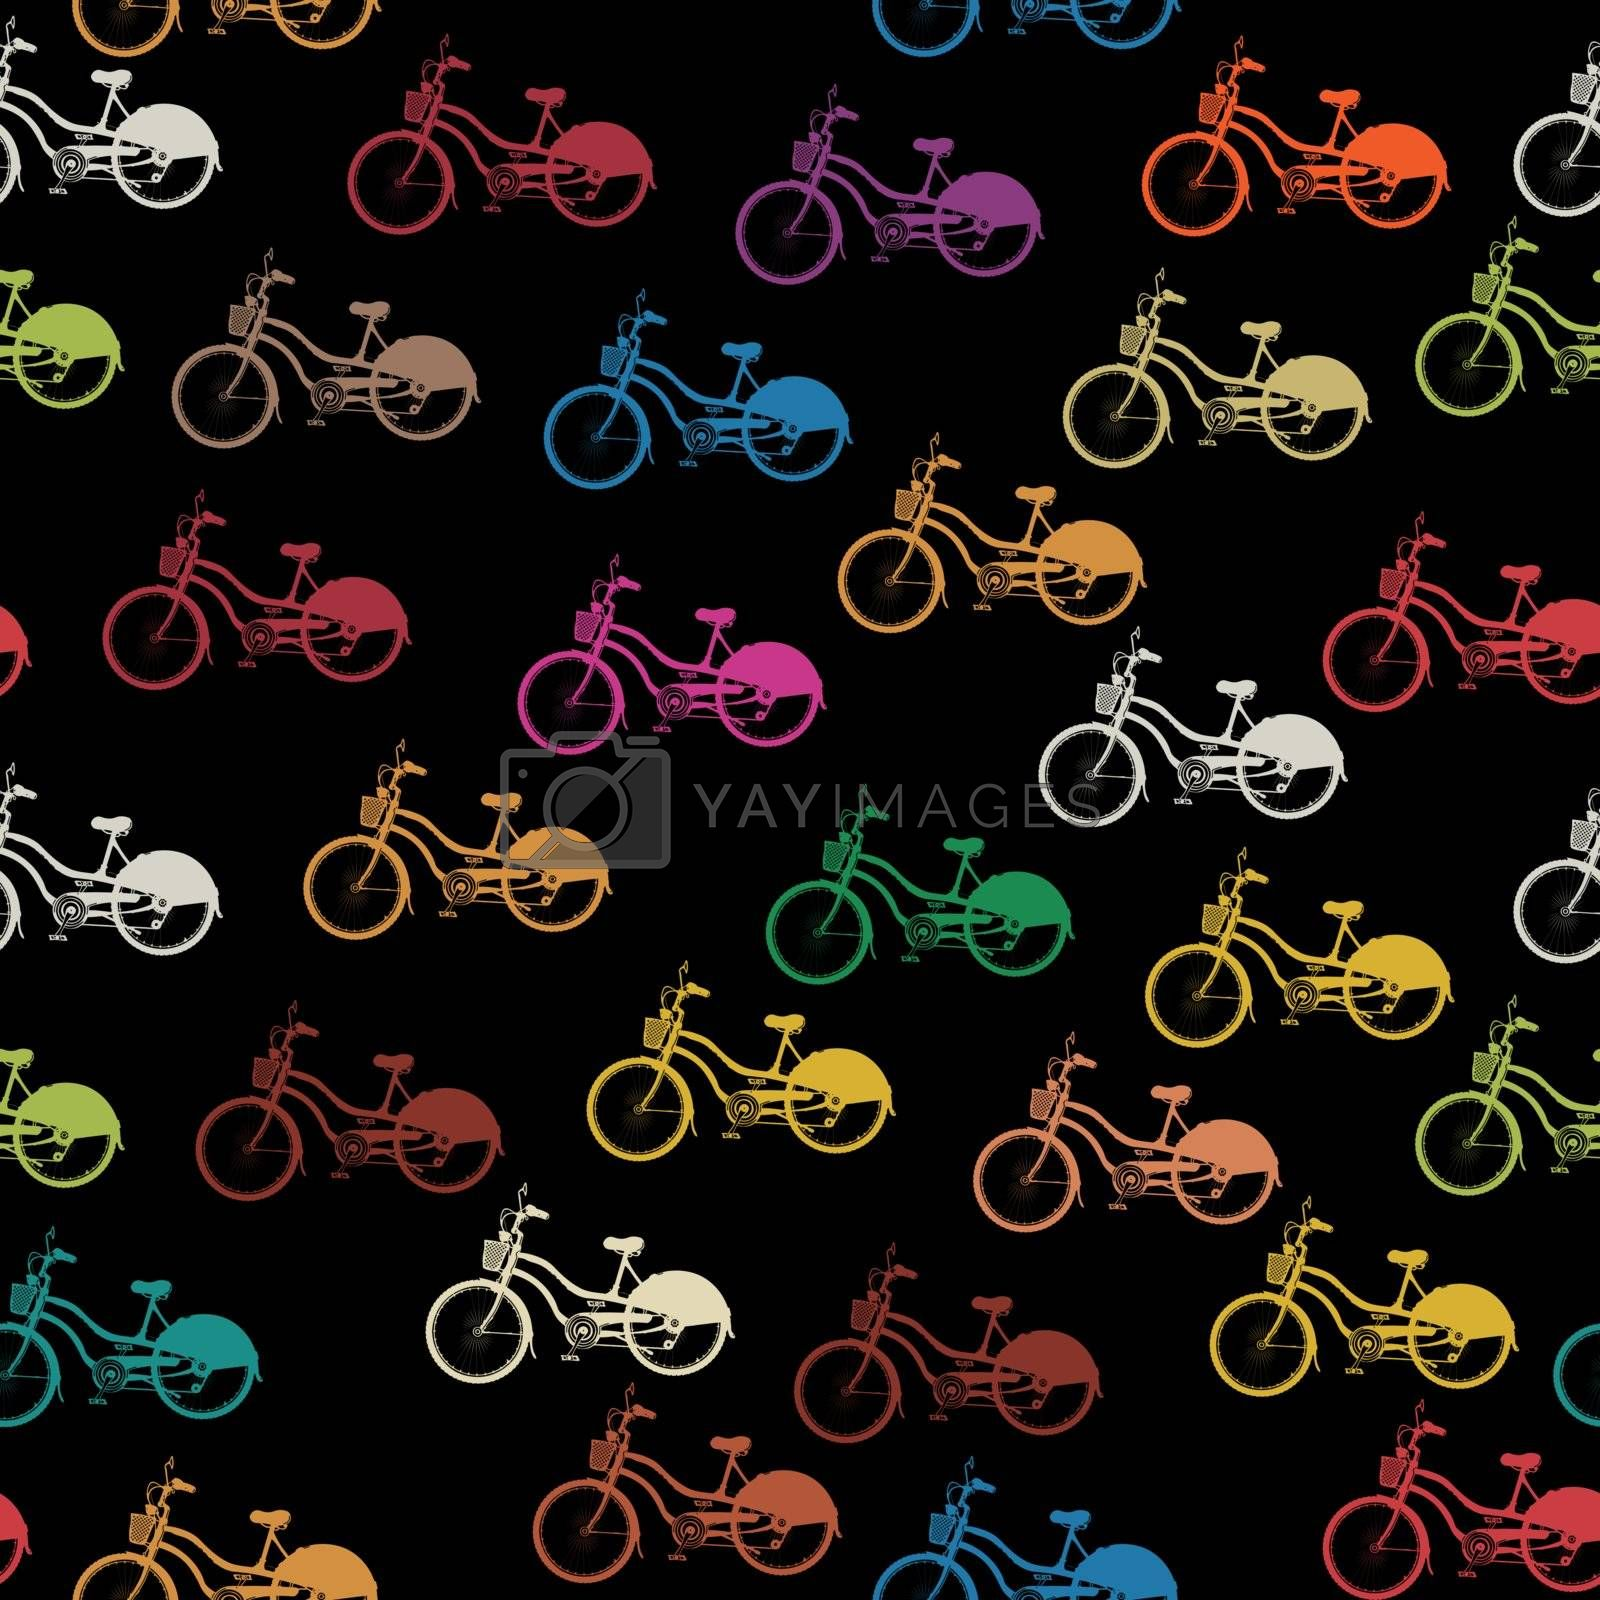 Seamless background pattern with colored bicycles